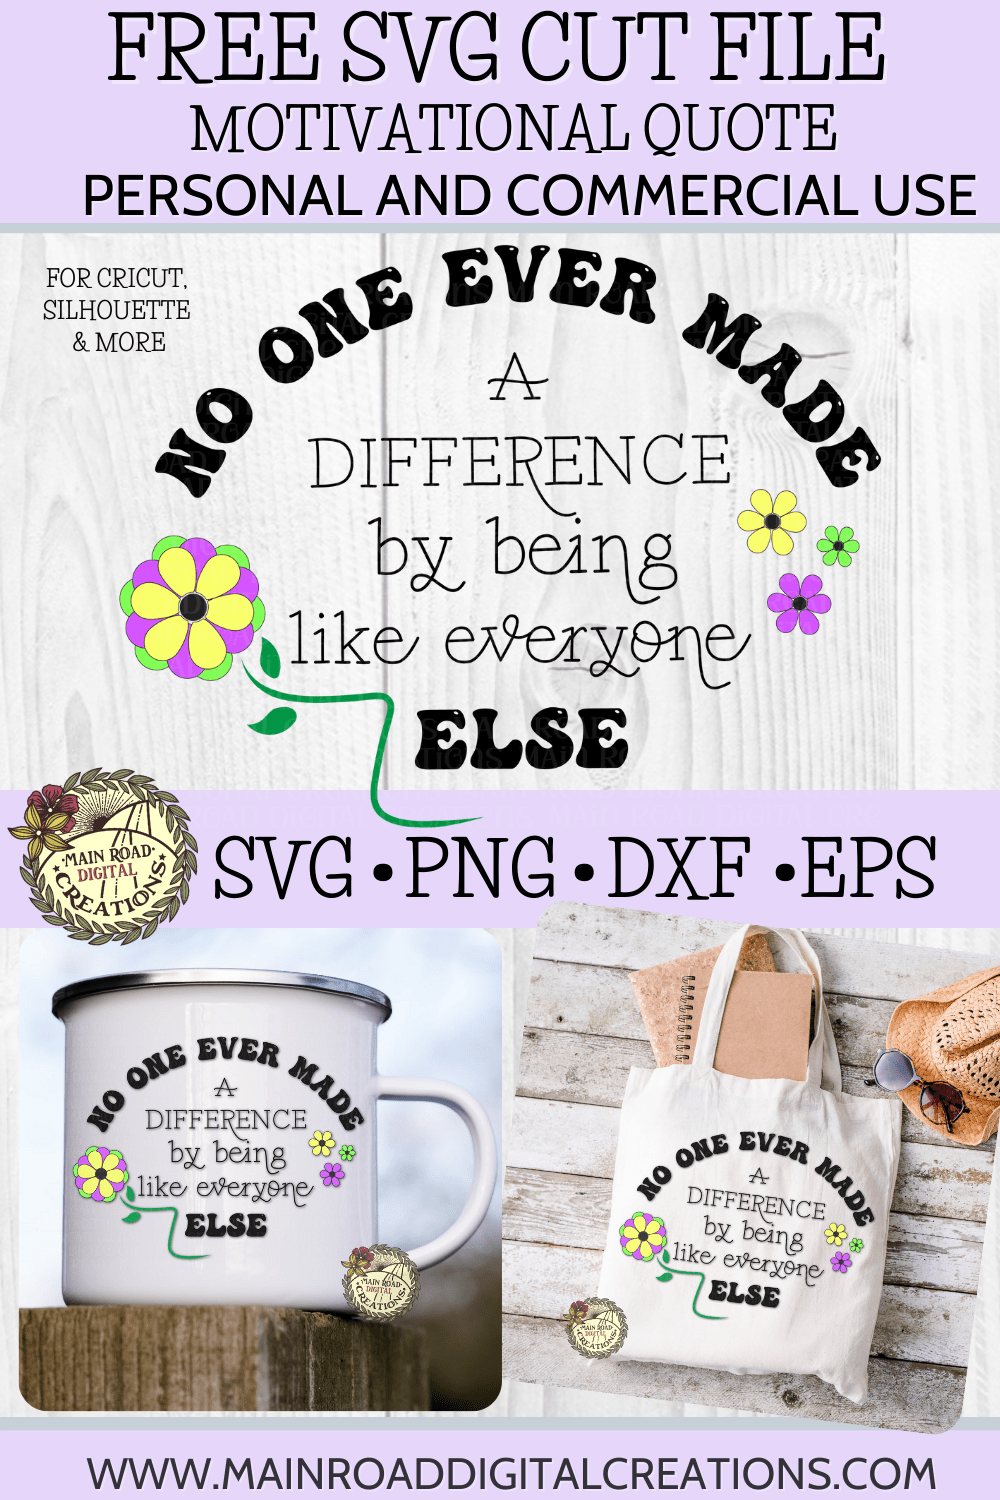 Free motivational quote svg, difference maker free svg, inspirational quote free svg files, flower svg, summer svg free, make a difference svg free, inspirational svg quote free, cricut cut files, positive quotes